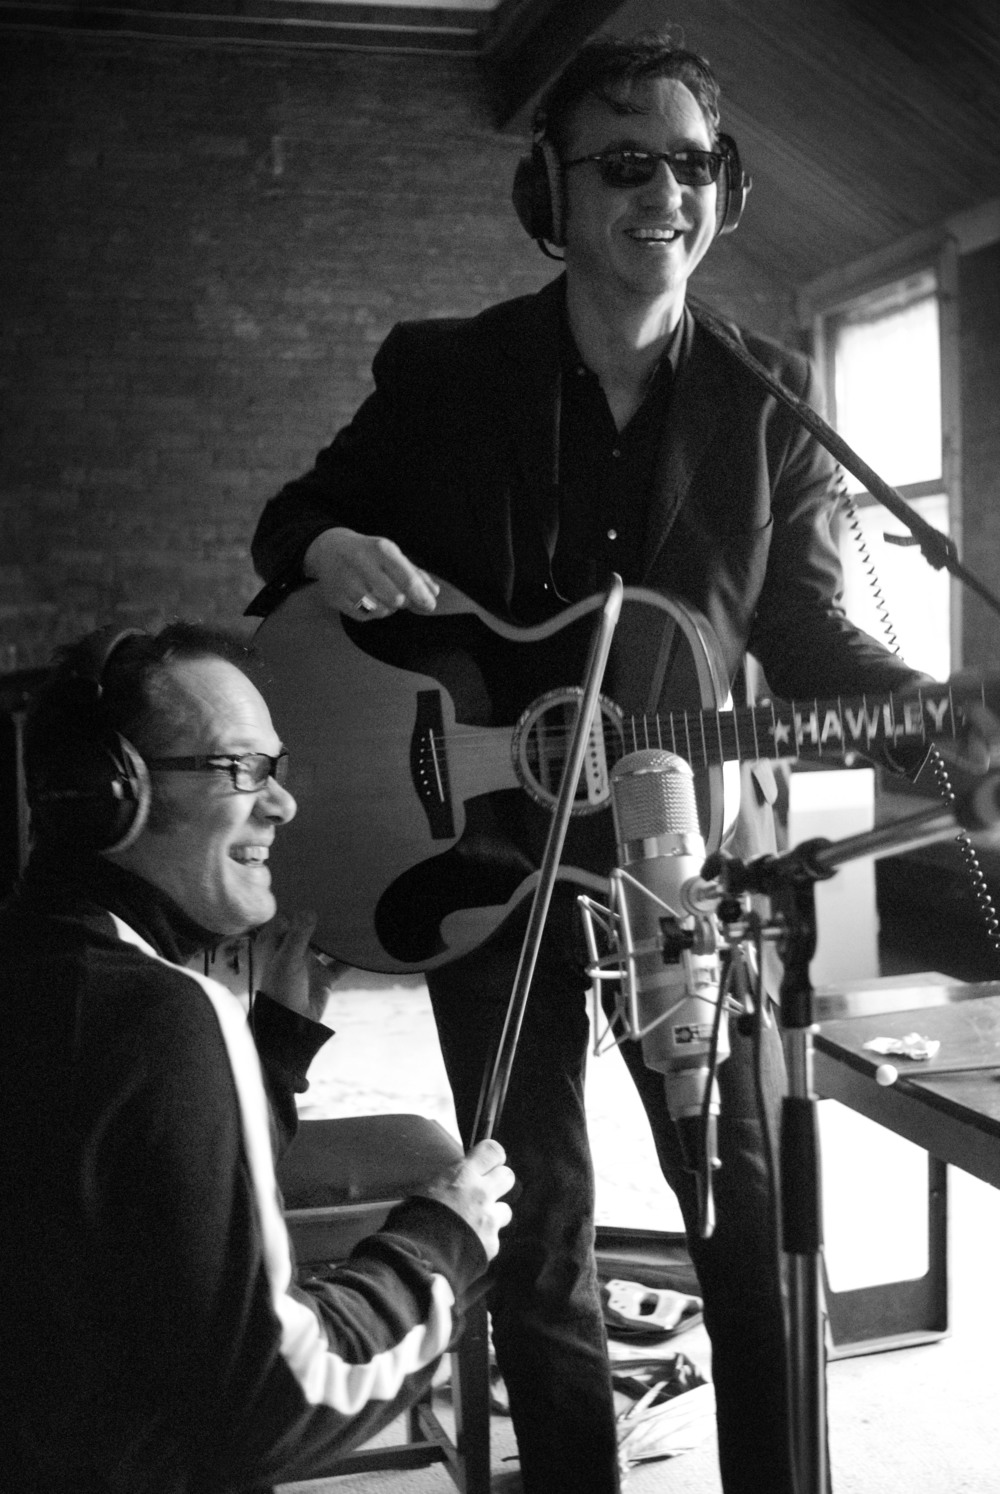 With Richard Hawley, Yellow Arch Studios, Sheffield, 2009. Photo: Chris Saunders